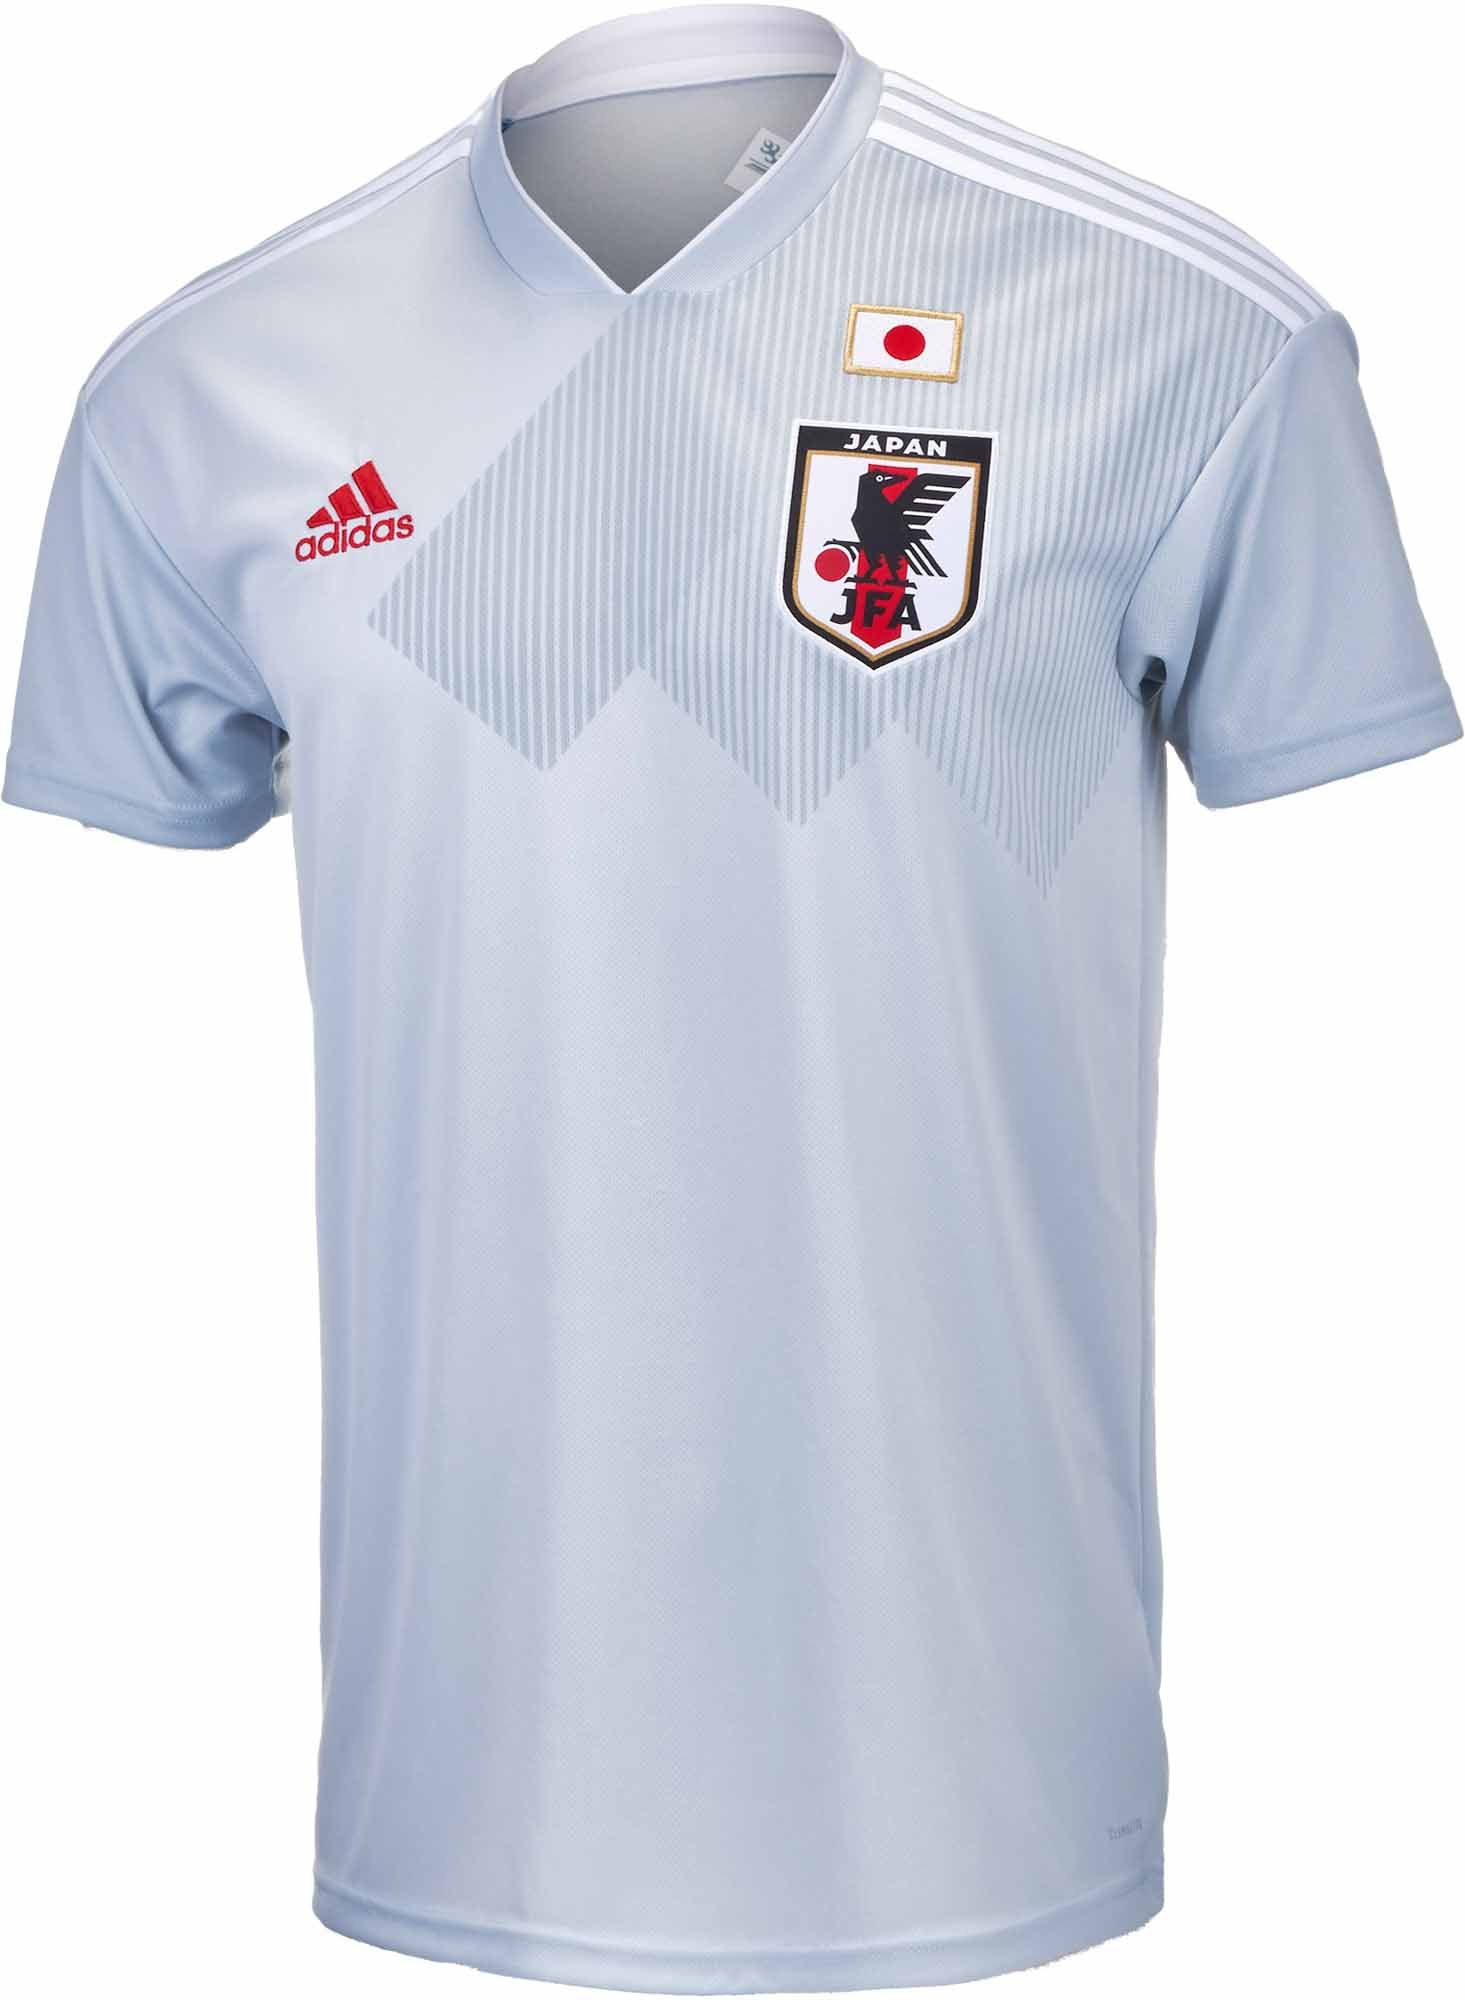 Buy the 2018 19 adidas Japan Away Jersey from soccerpro.com  04721d1e4